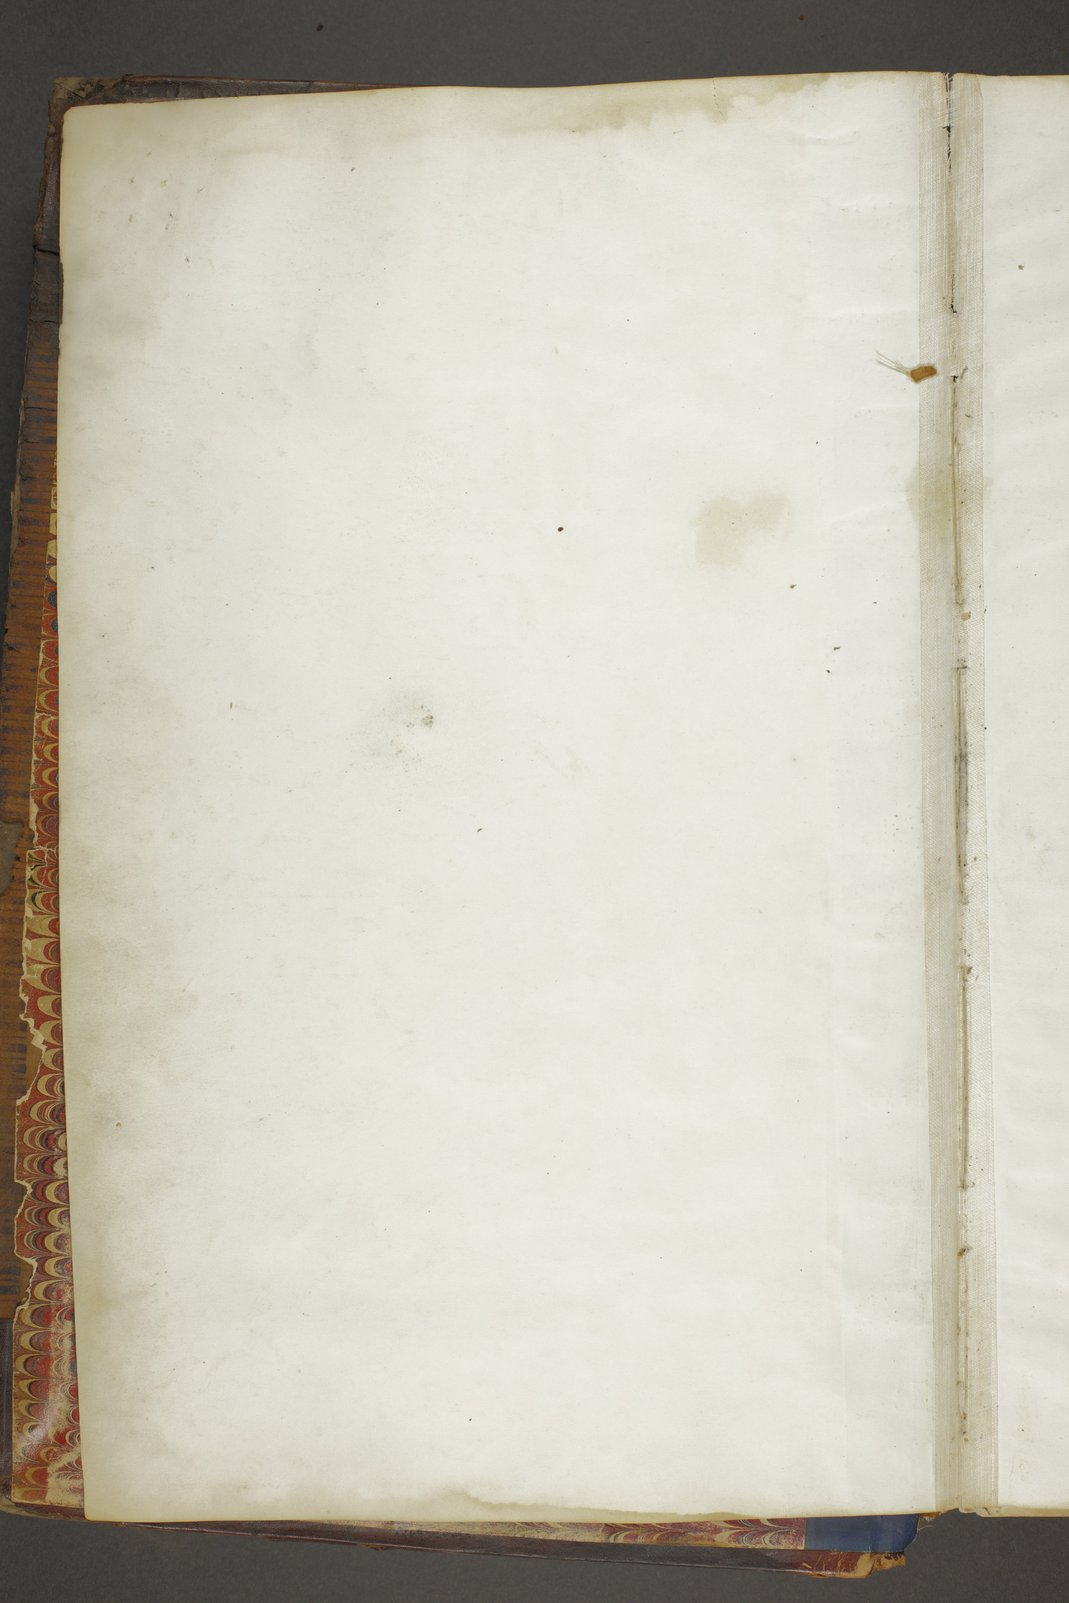 Personal histories of inmates - Volume I, Blank page